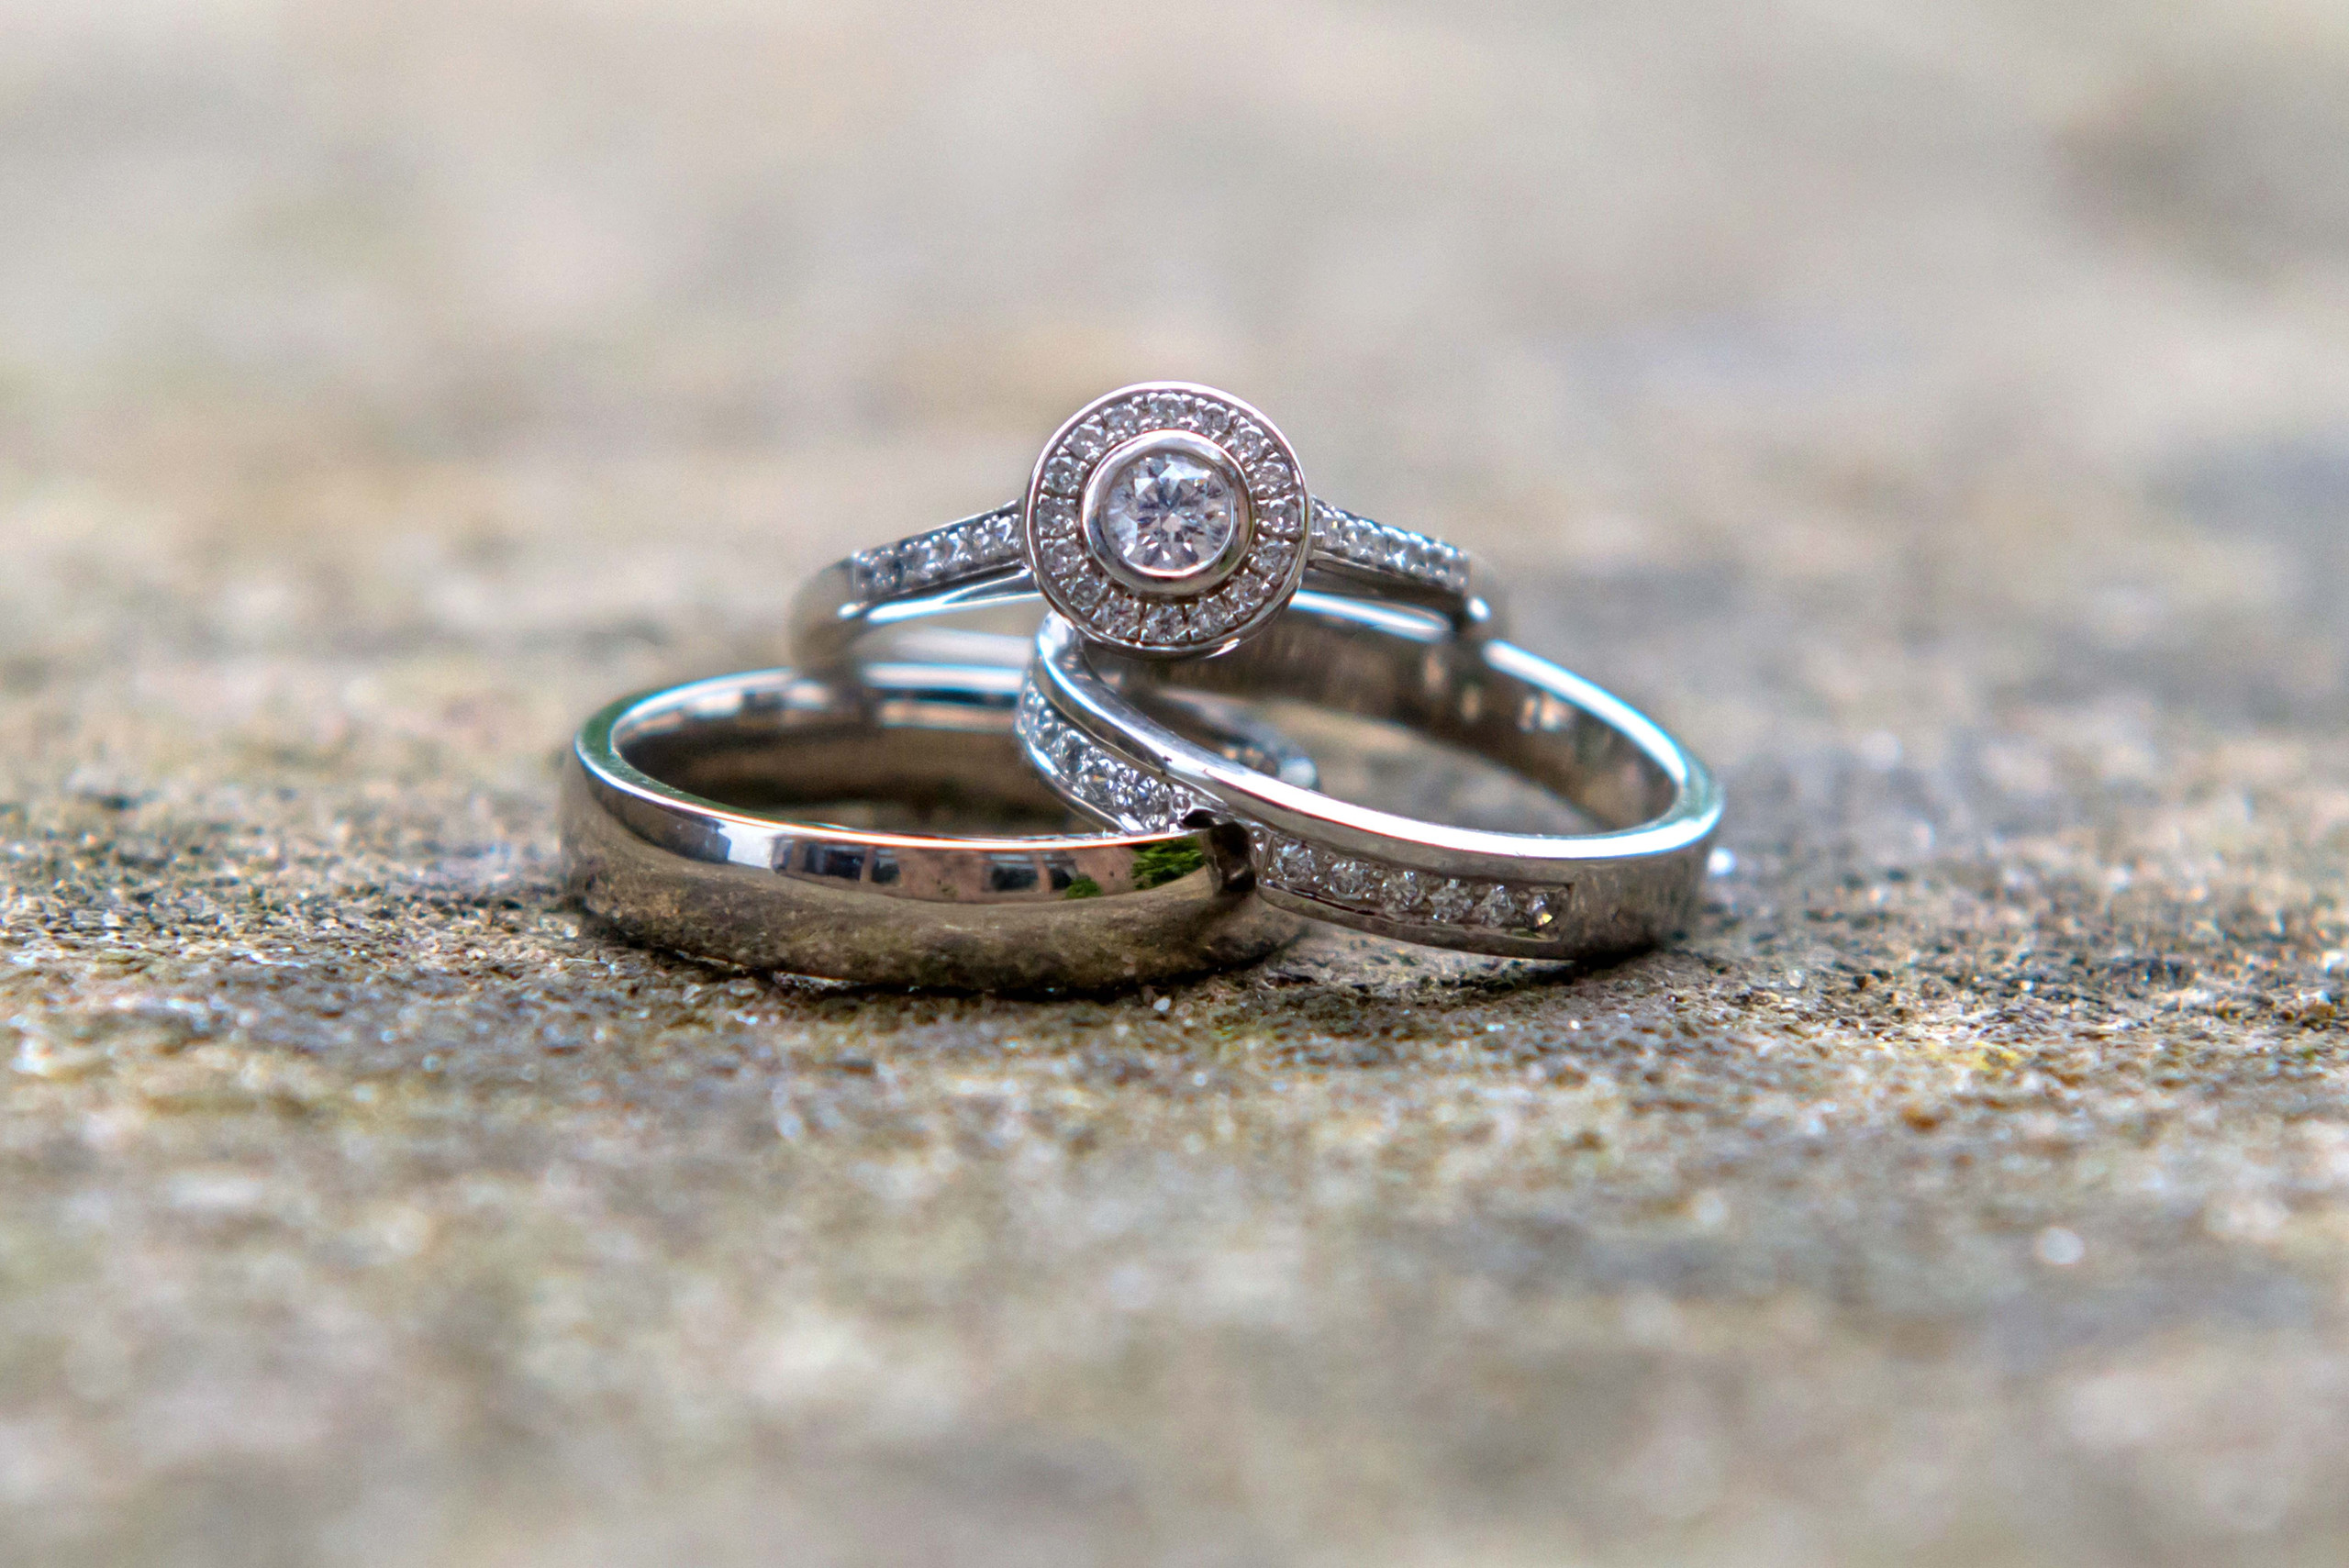 Close up photograph of platinum and diamond bride and groom wedding rings with engagement ring on wedding day